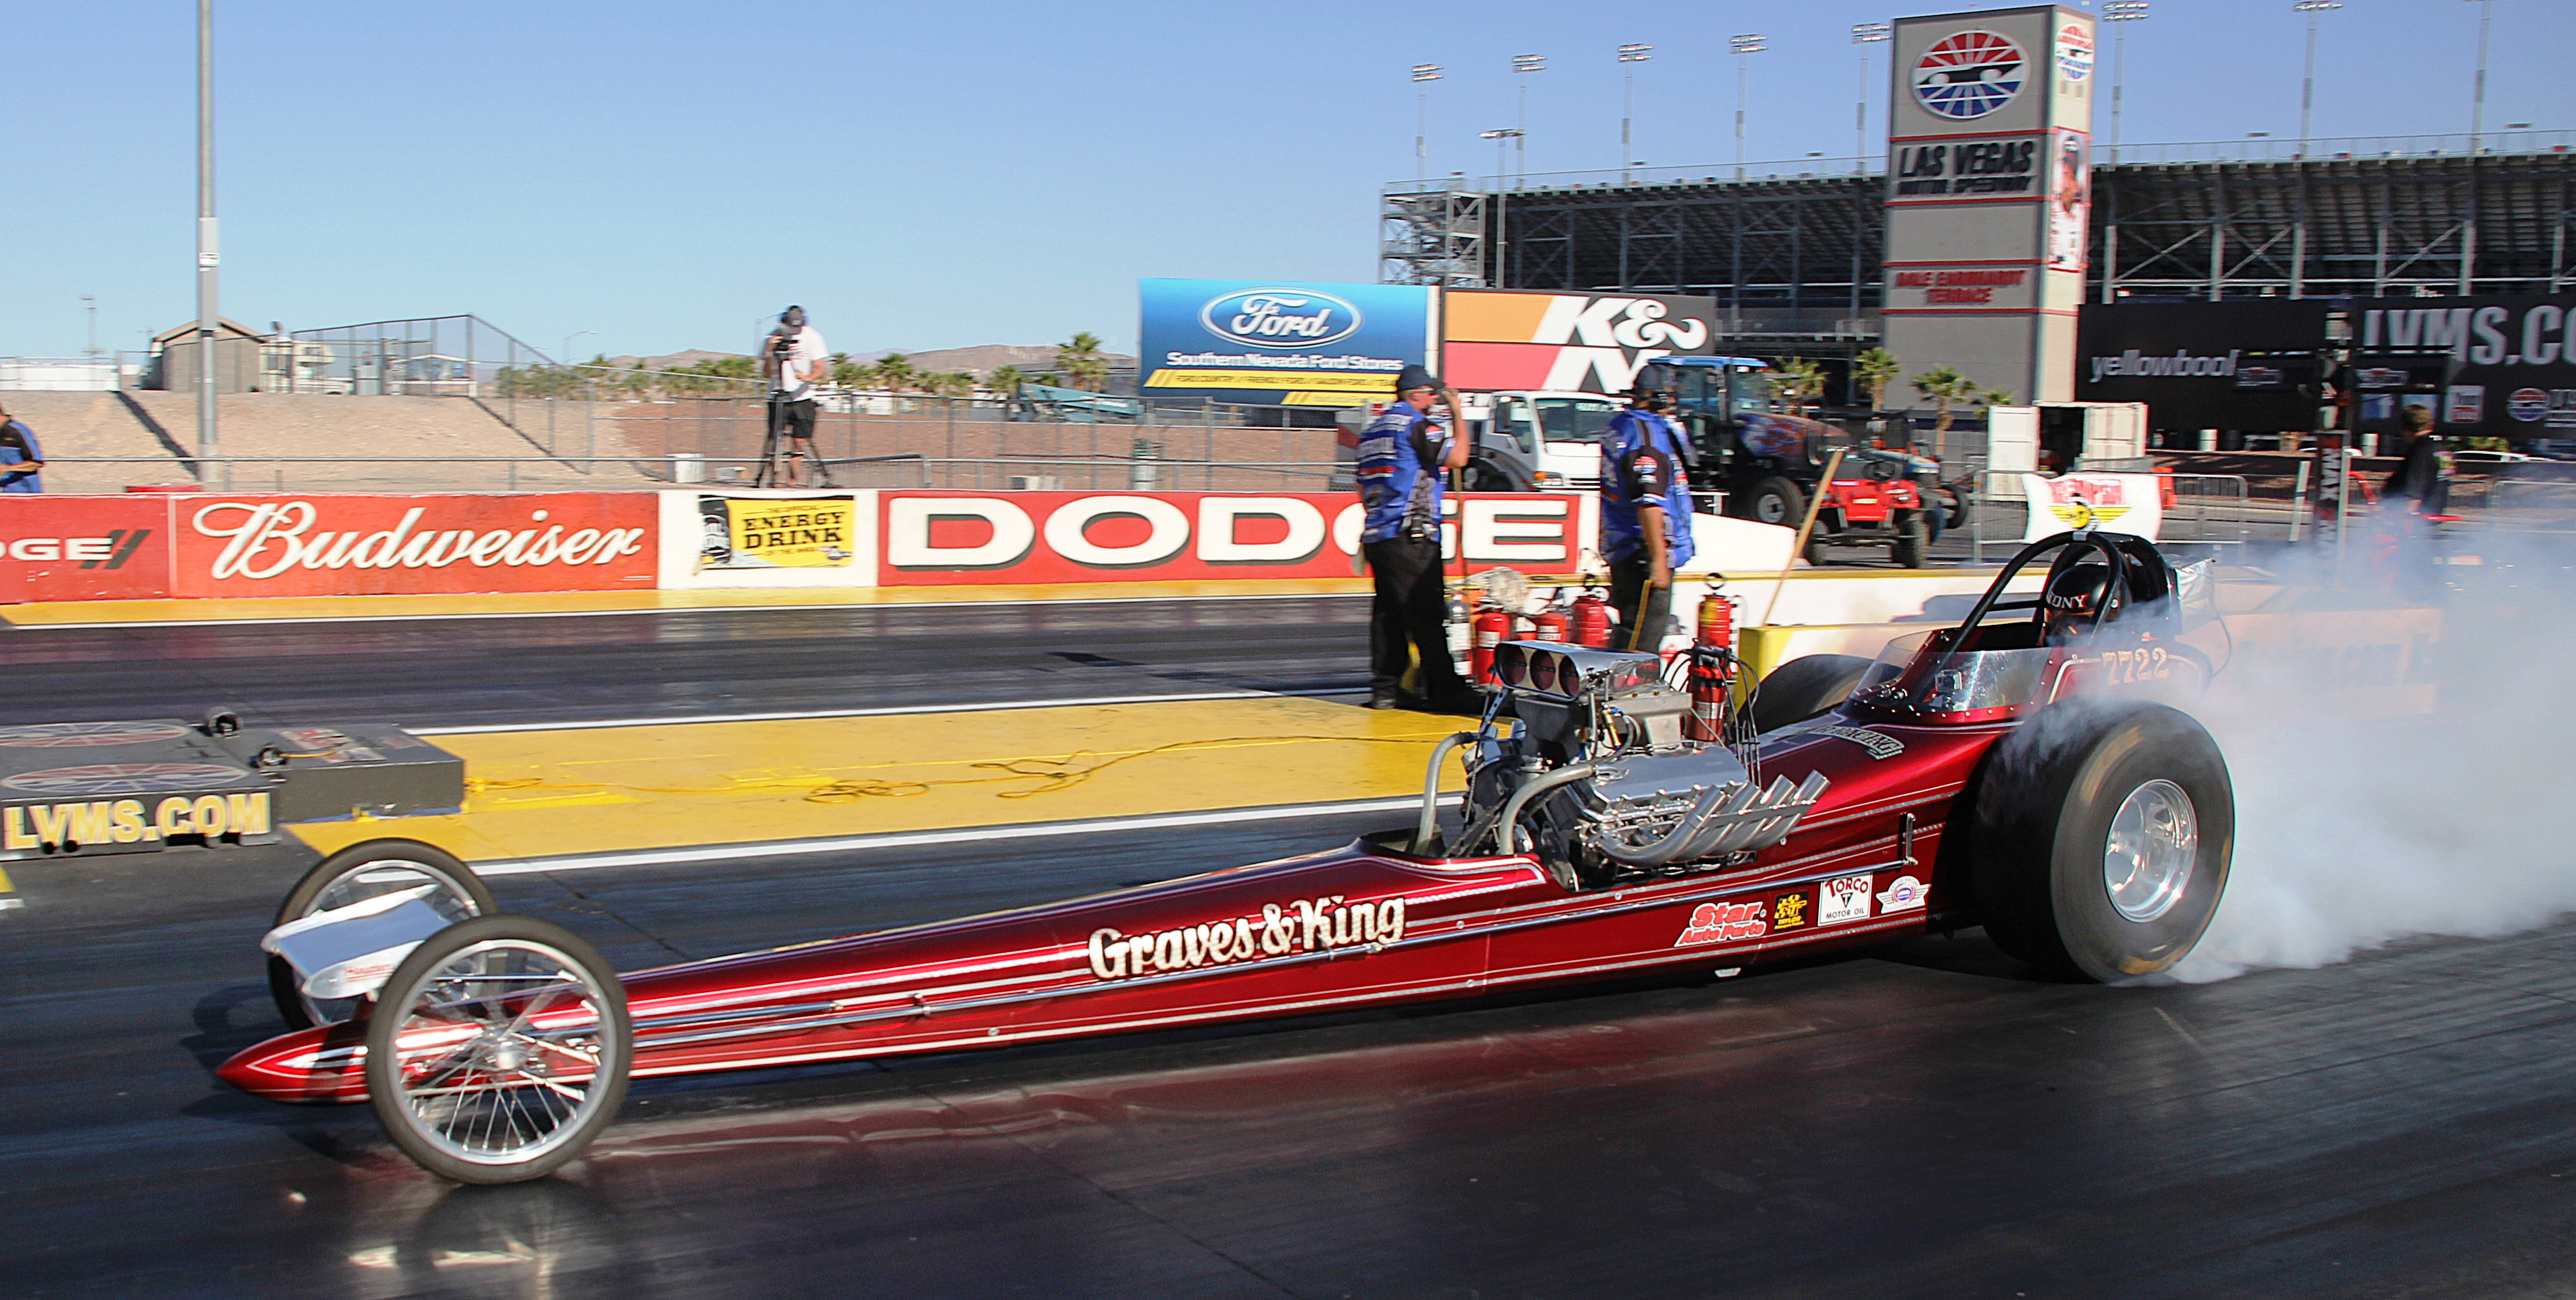 drag racing race hot rod rods dragster g